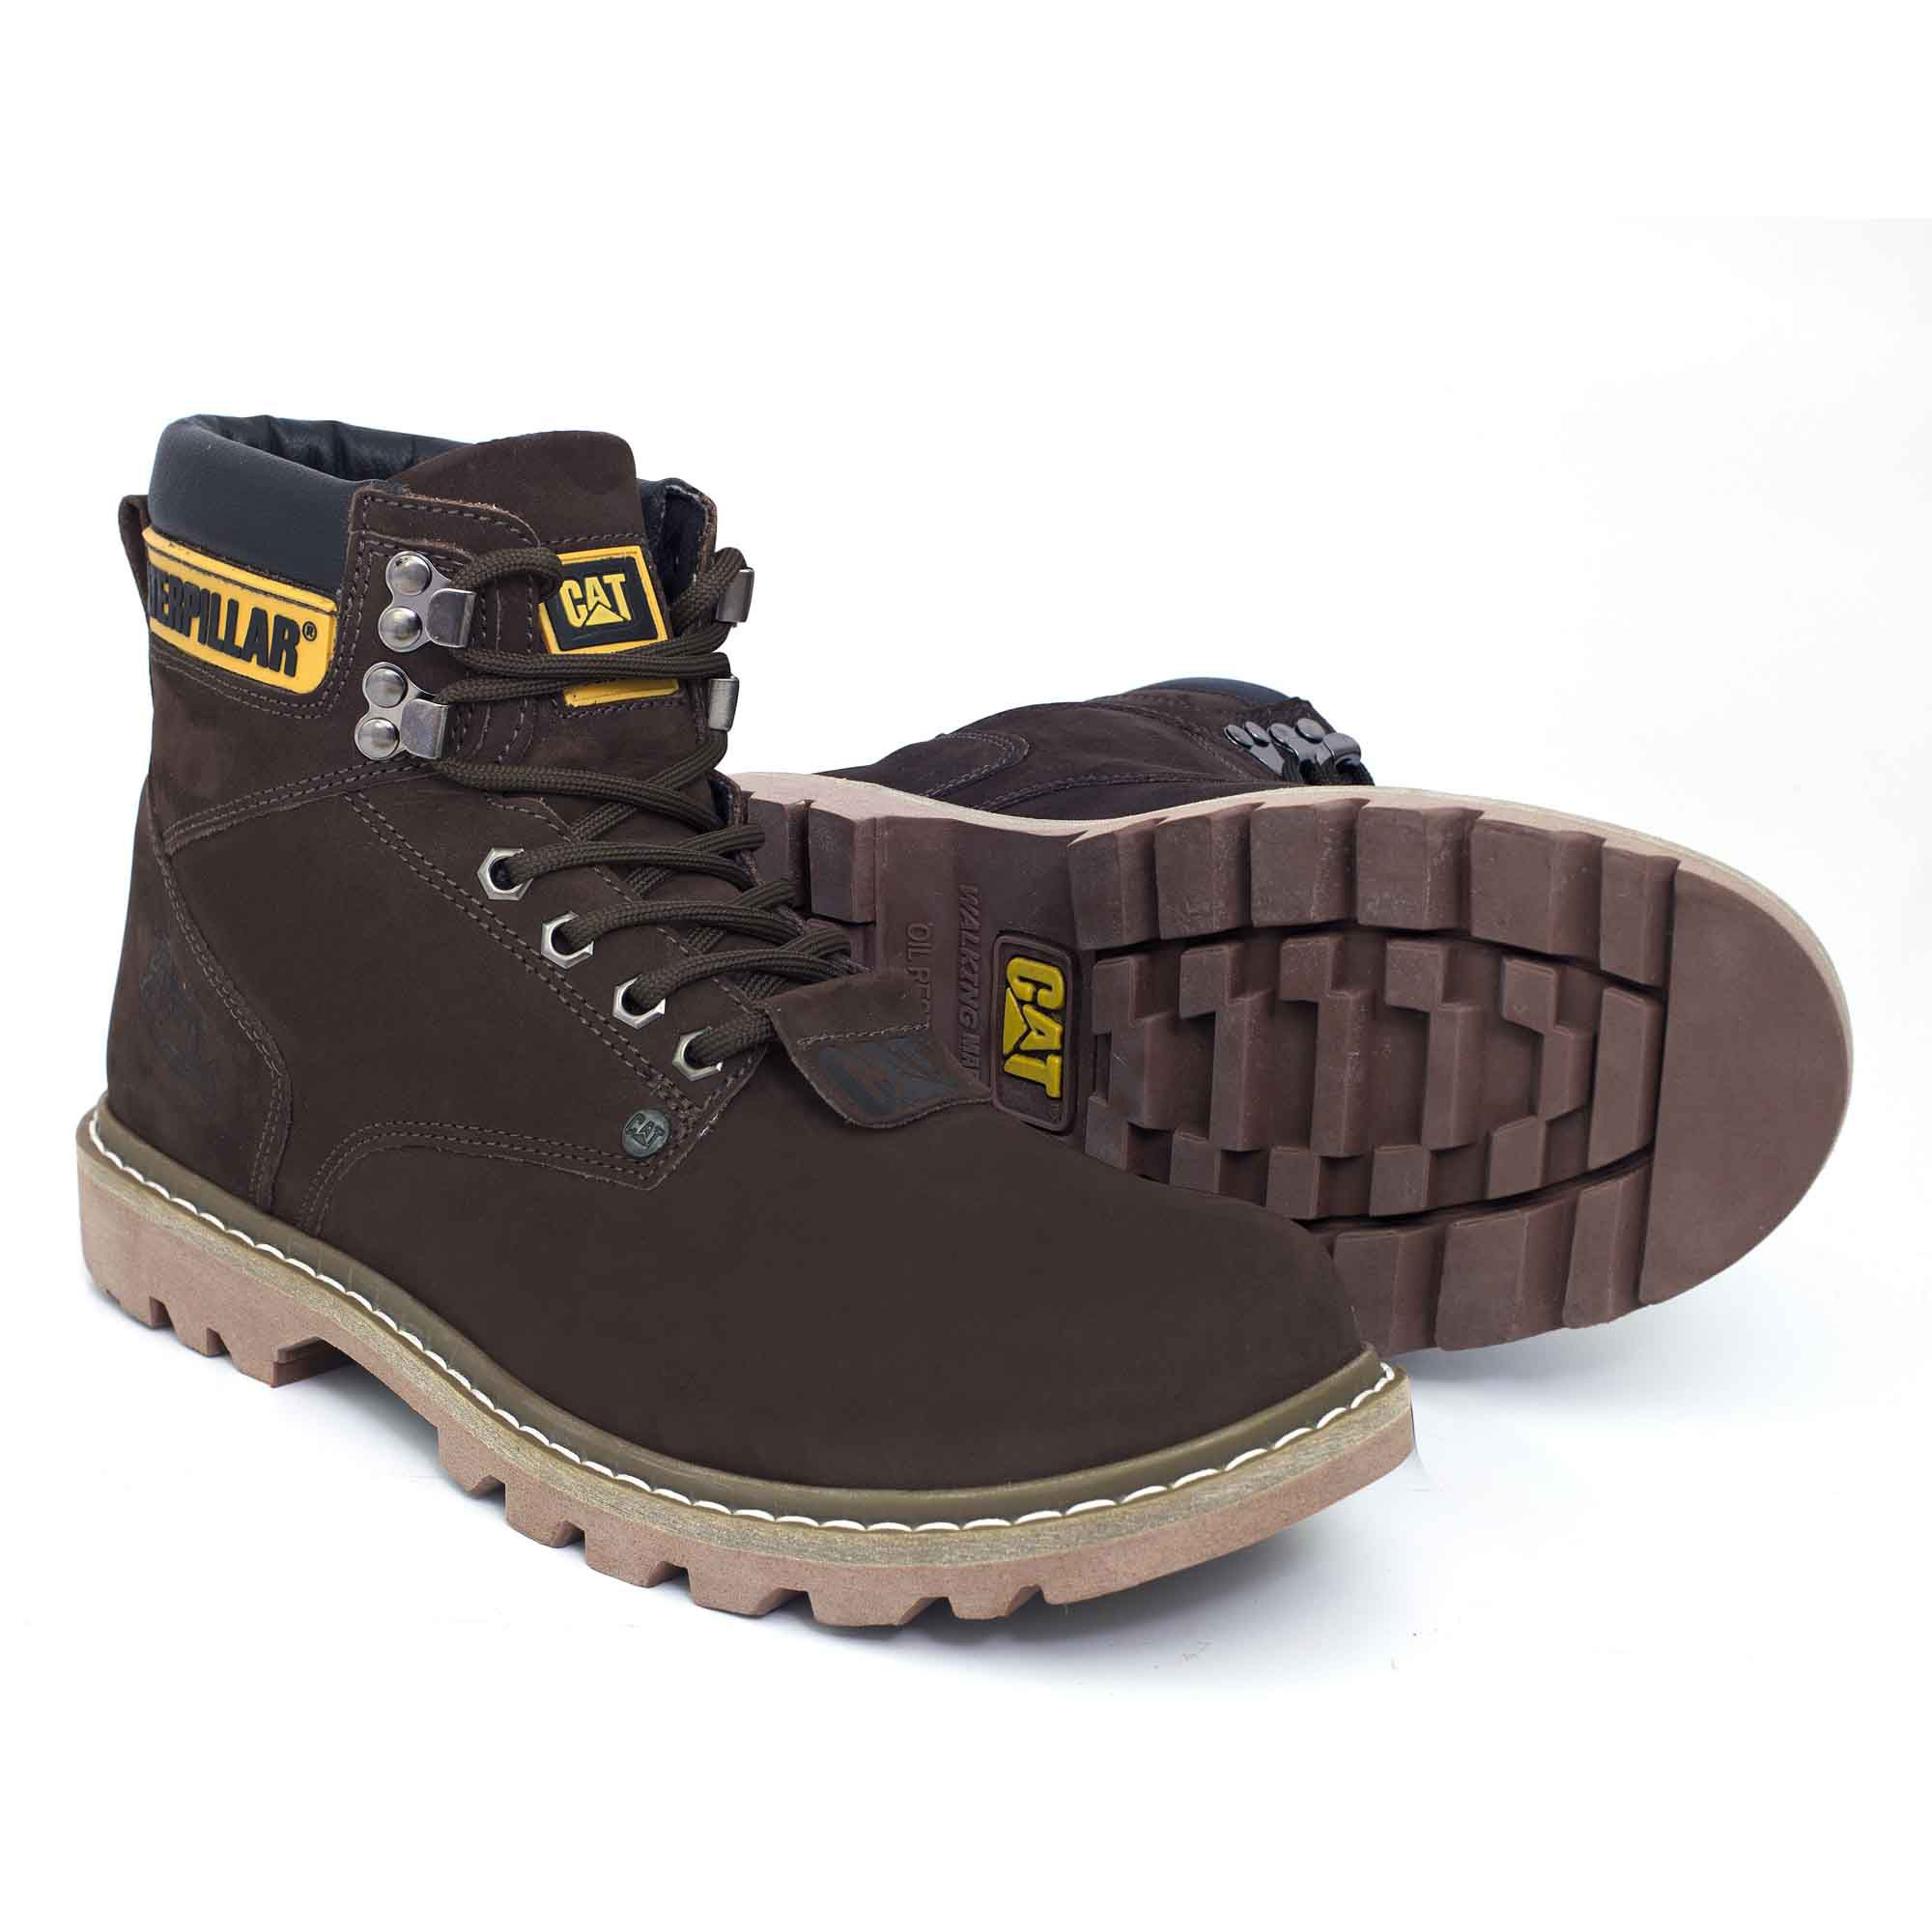 16ba7de1 Bota Coturno Caterpillar Second Shift Couro - Brown